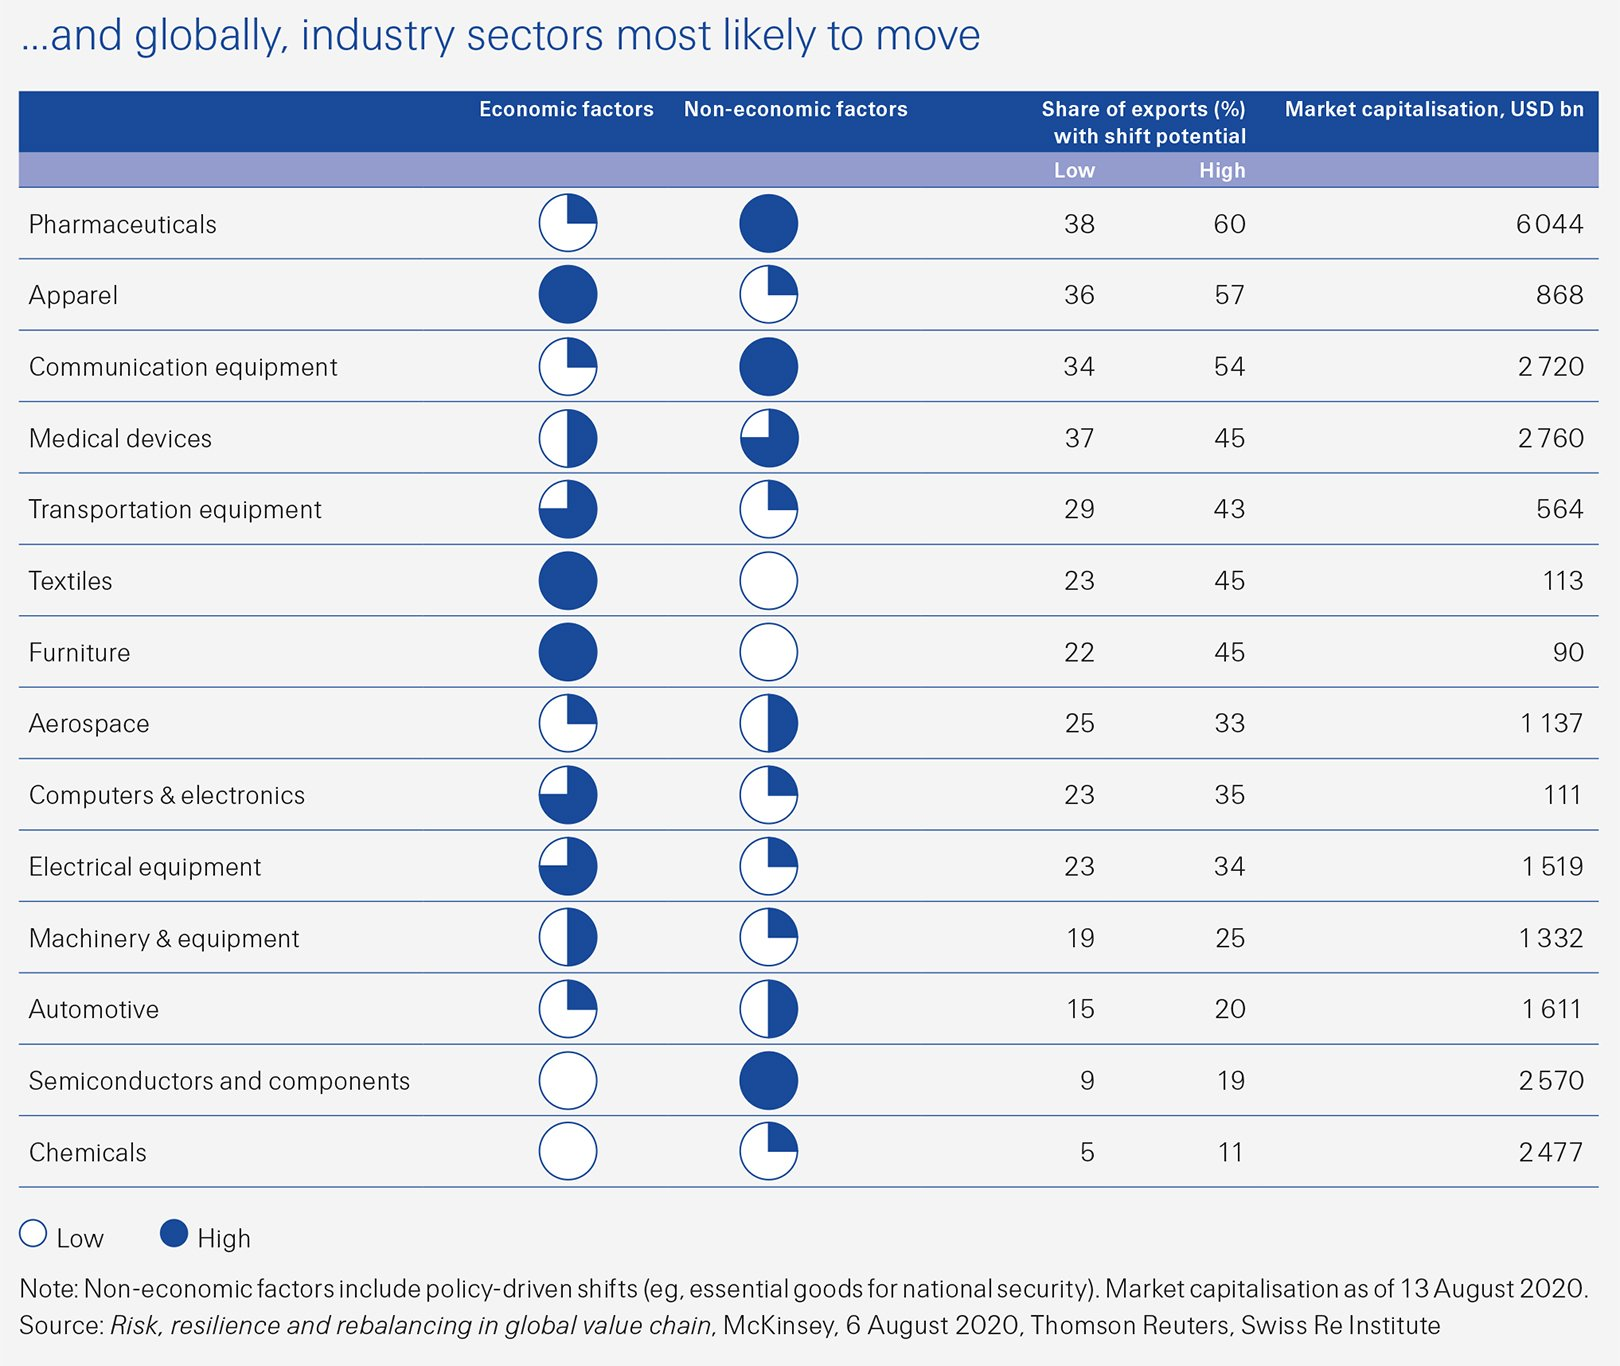 This Swiss Re Institute sigma 6/2020 figure shows which industry sectors, globally, are most likely to move.